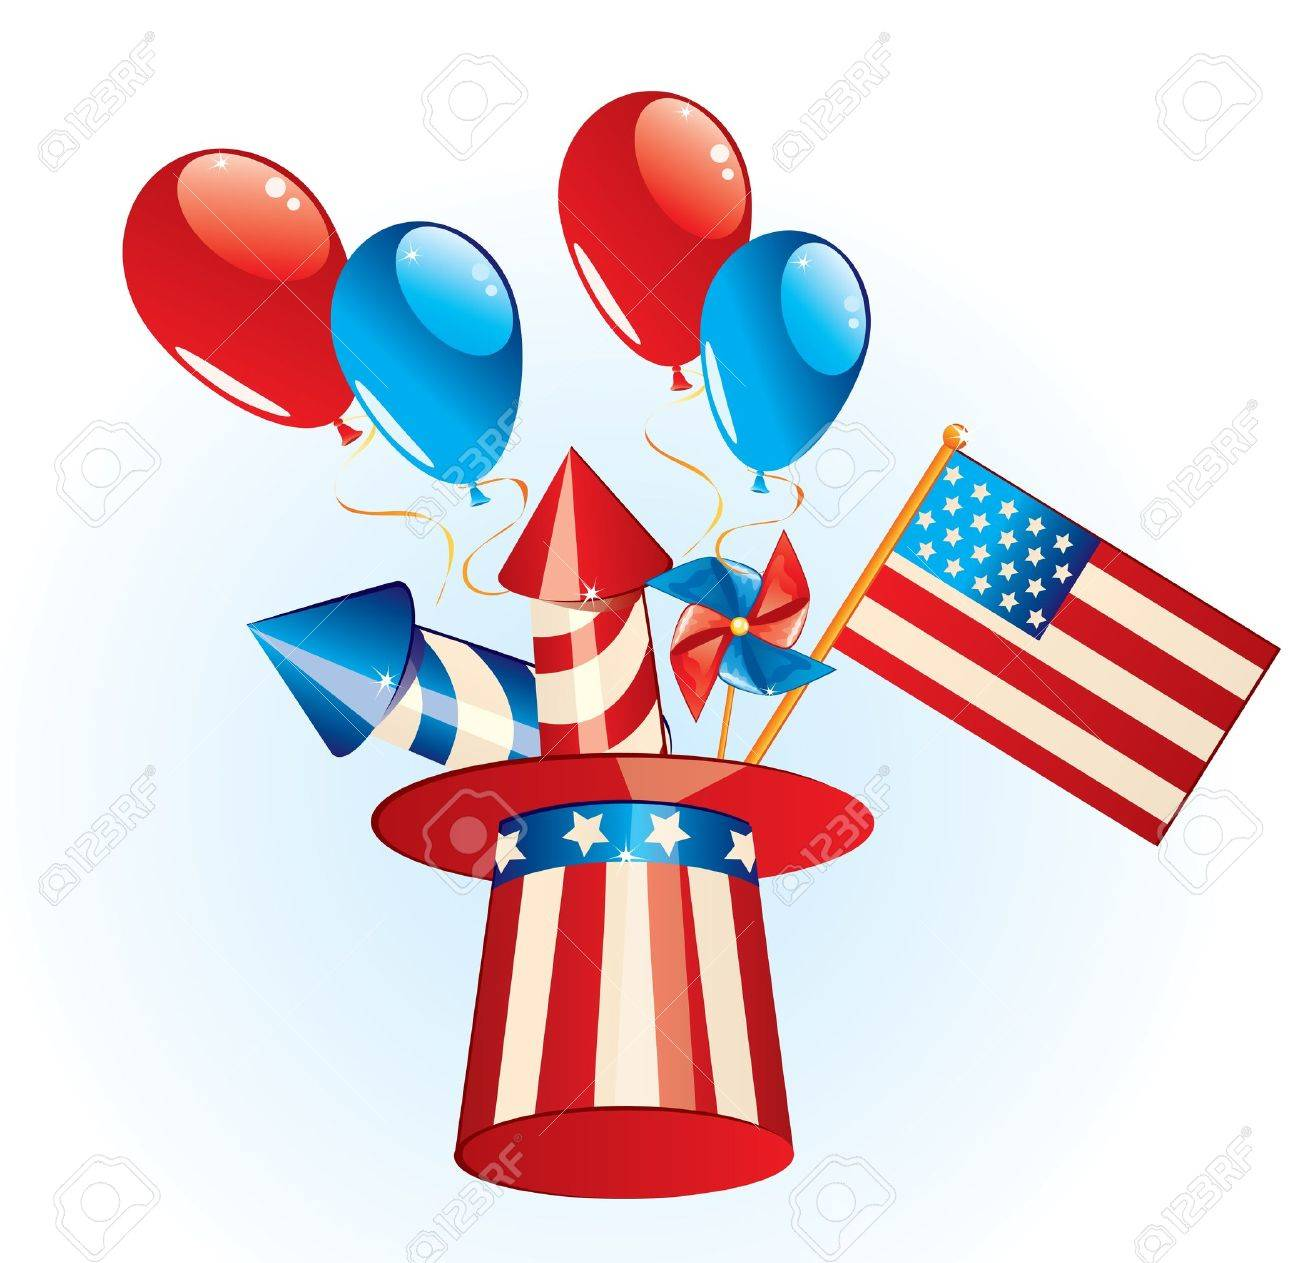 hight resolution of 4th july independence day stock vector 20146816